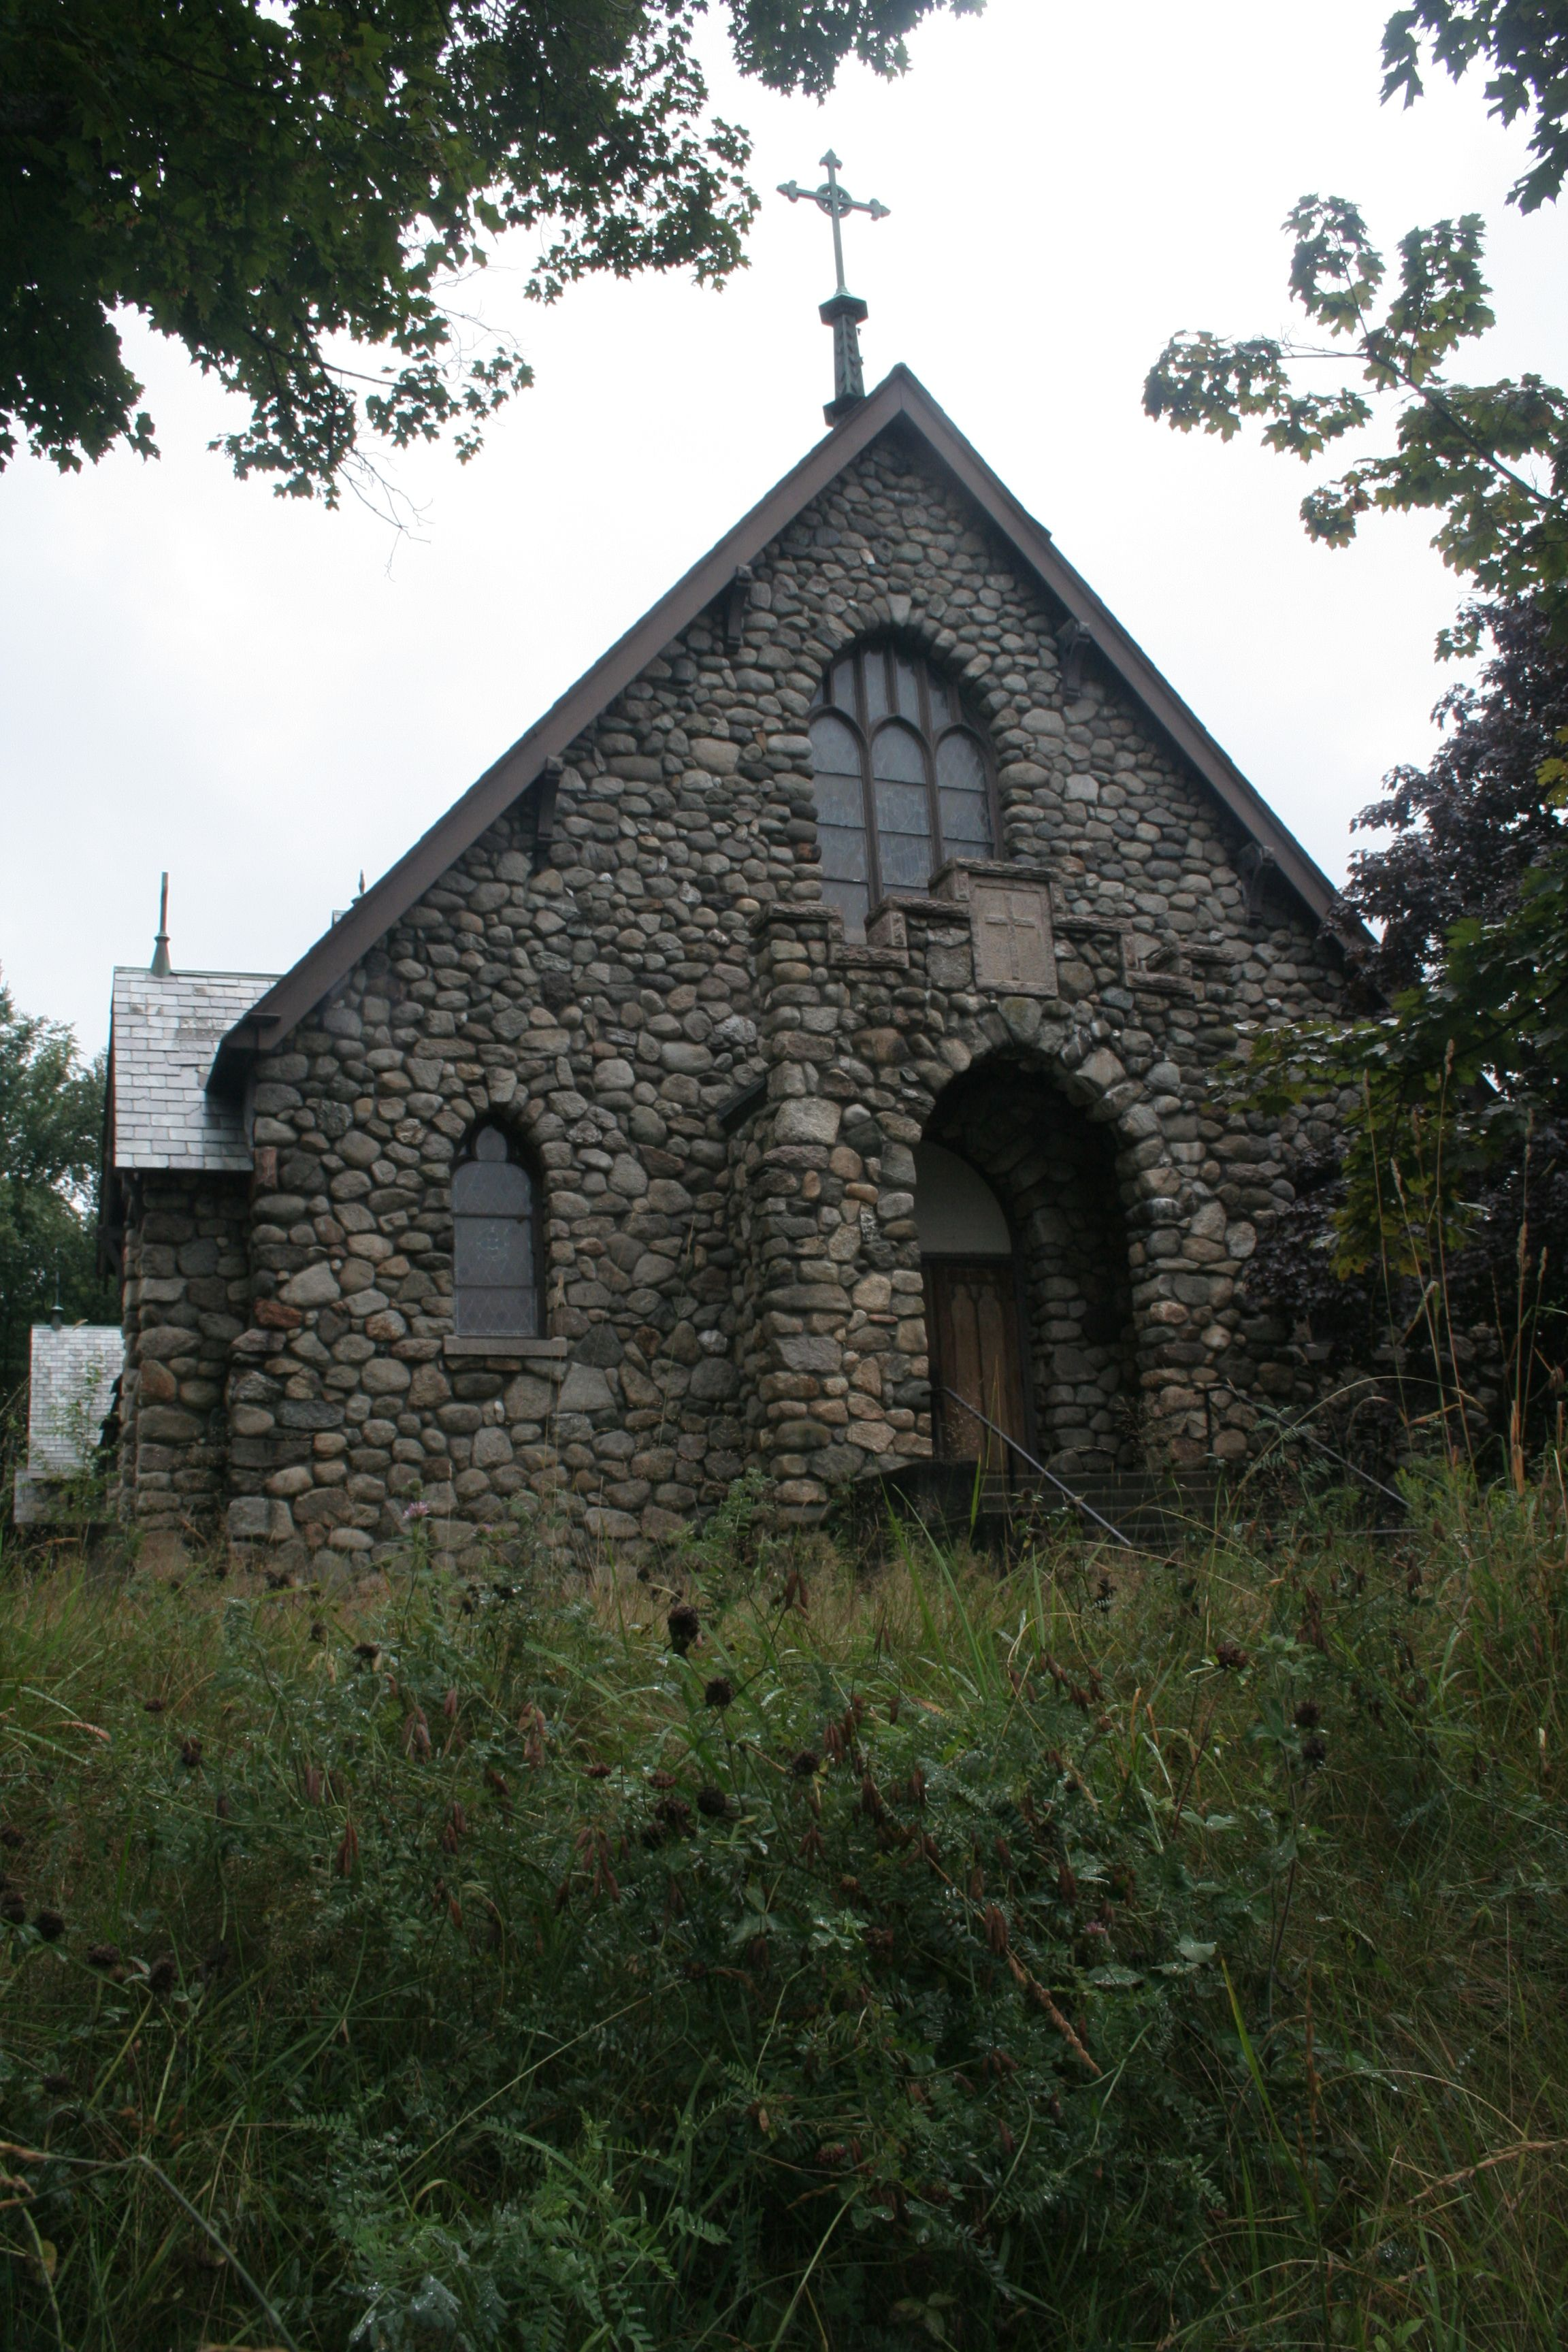 Old stone church - reminds me of my trip to Ireland